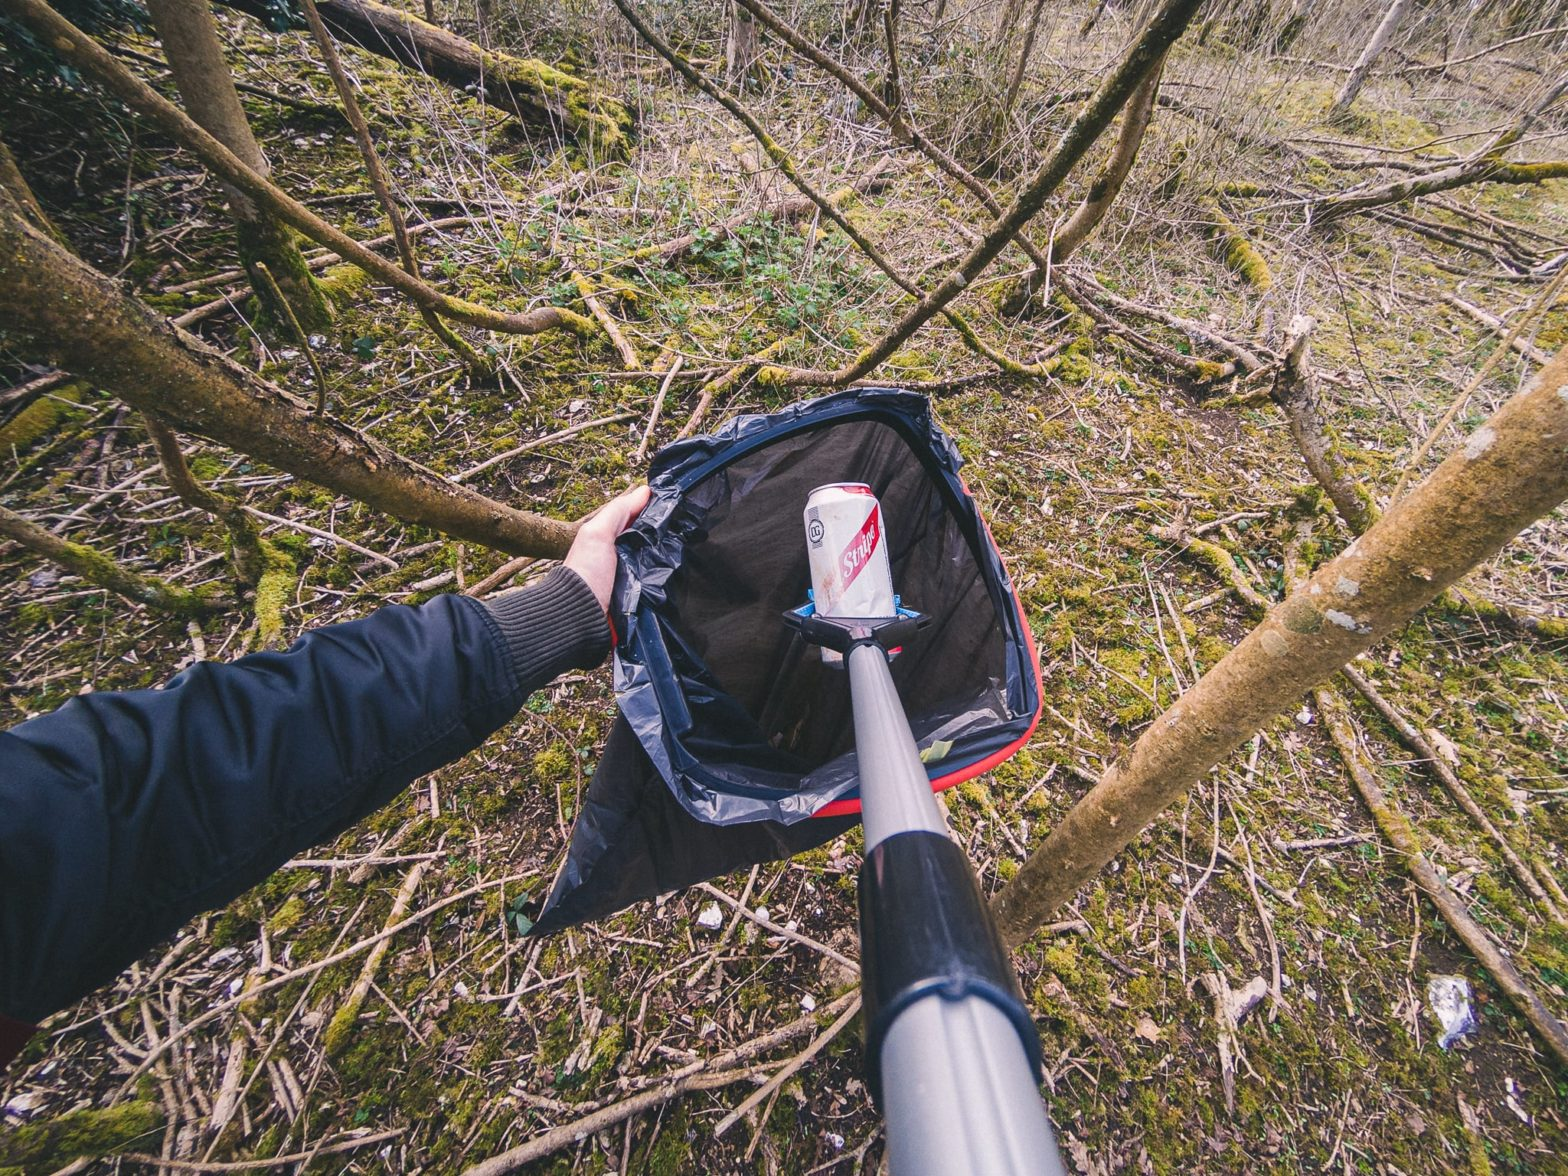 A discarded aluminium can in a forest being placed in a bag with a litter picker